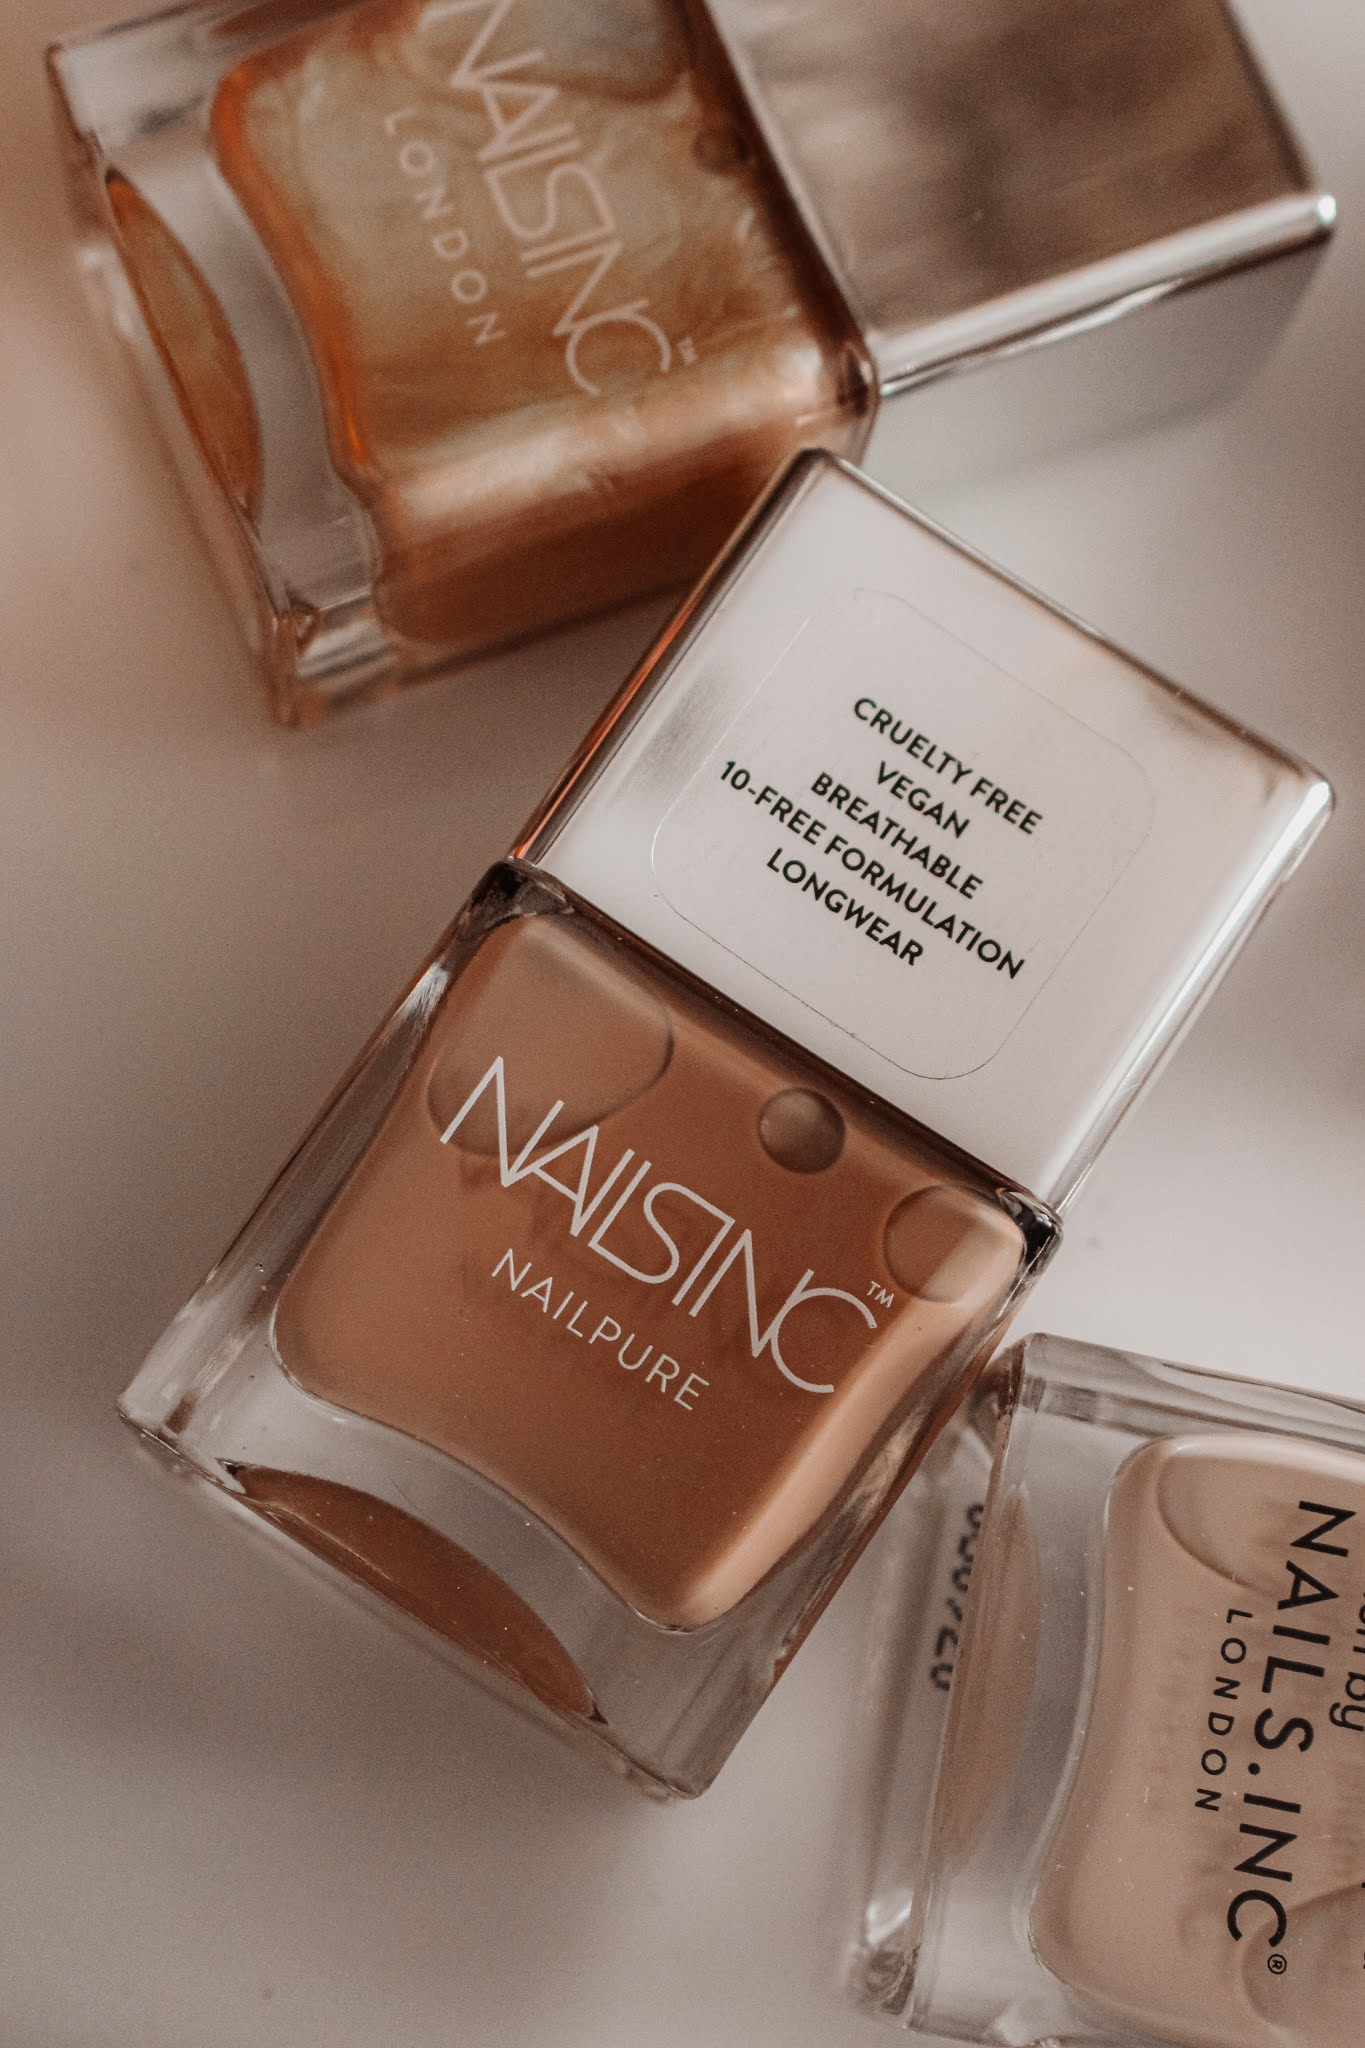 Nails Inc December 2020 Christmas Giveaway Worldwide